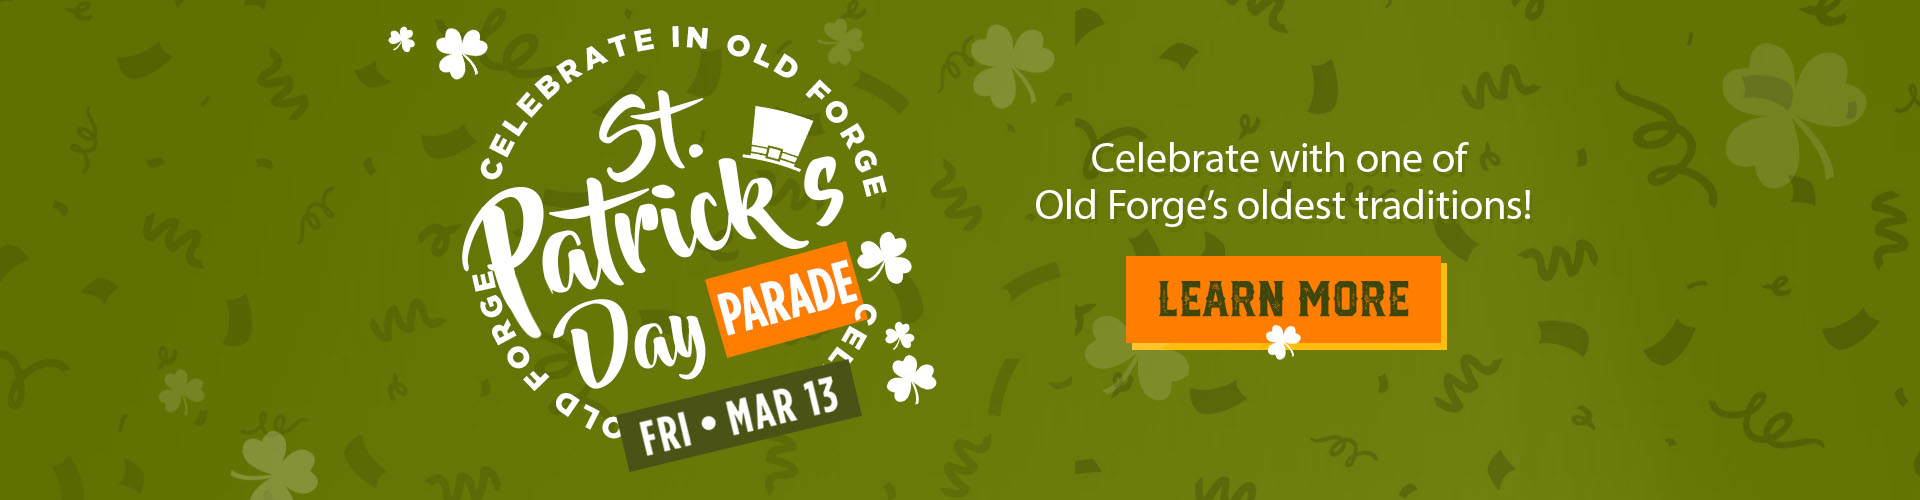 St Patty's Day Parade in Old Forge